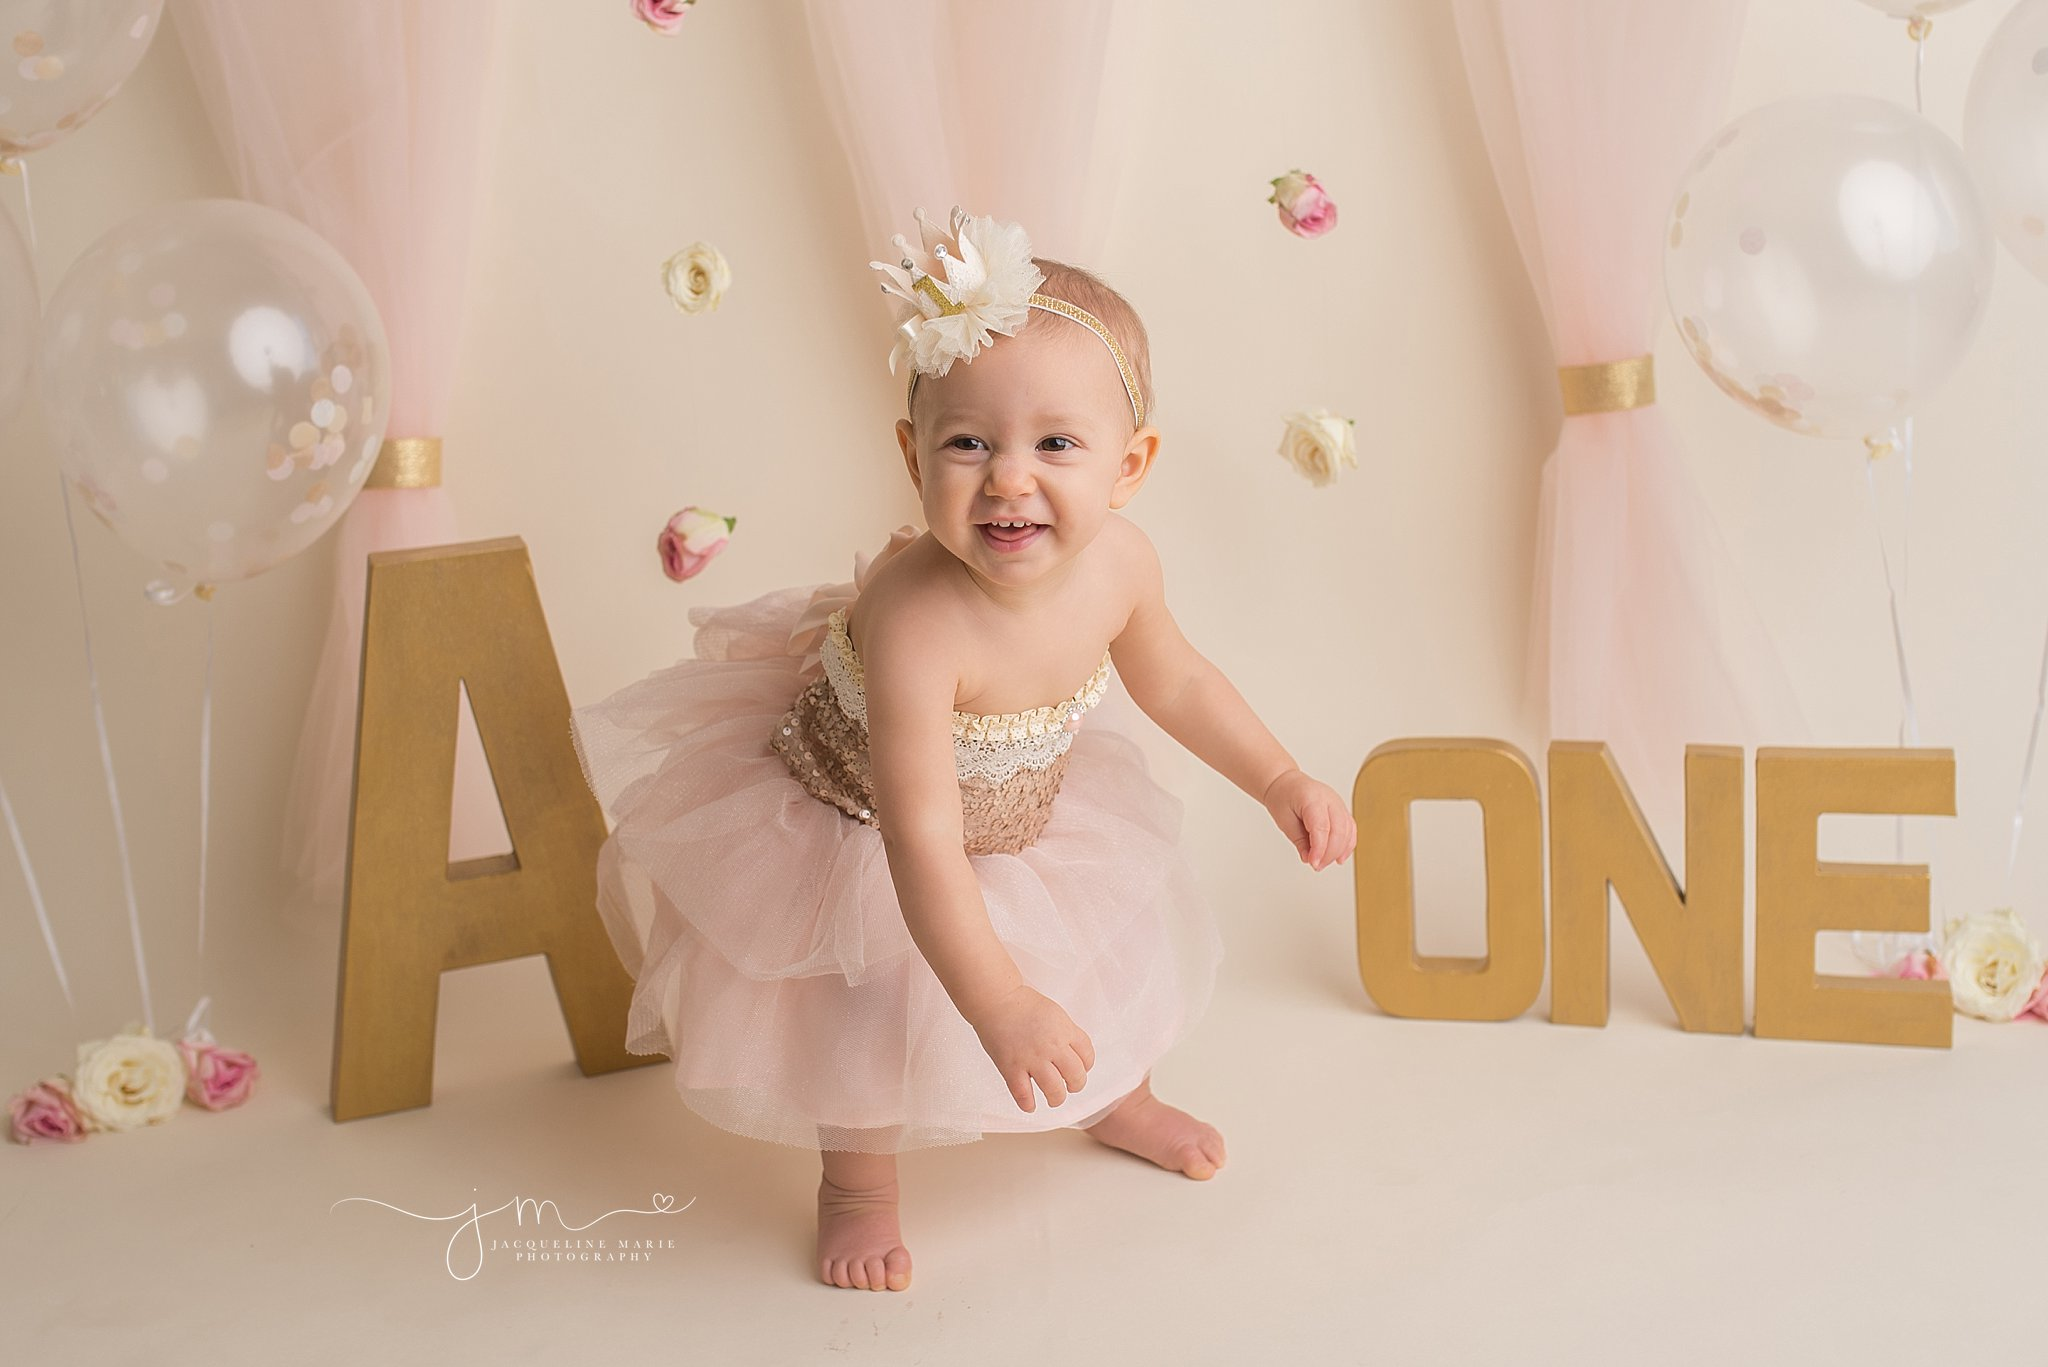 First birthday portraits, Columbus baby photographer, Columbus Ohio first birthday photographer, Cake smash photography, gold and pink first birthday, gold and pink cake smash